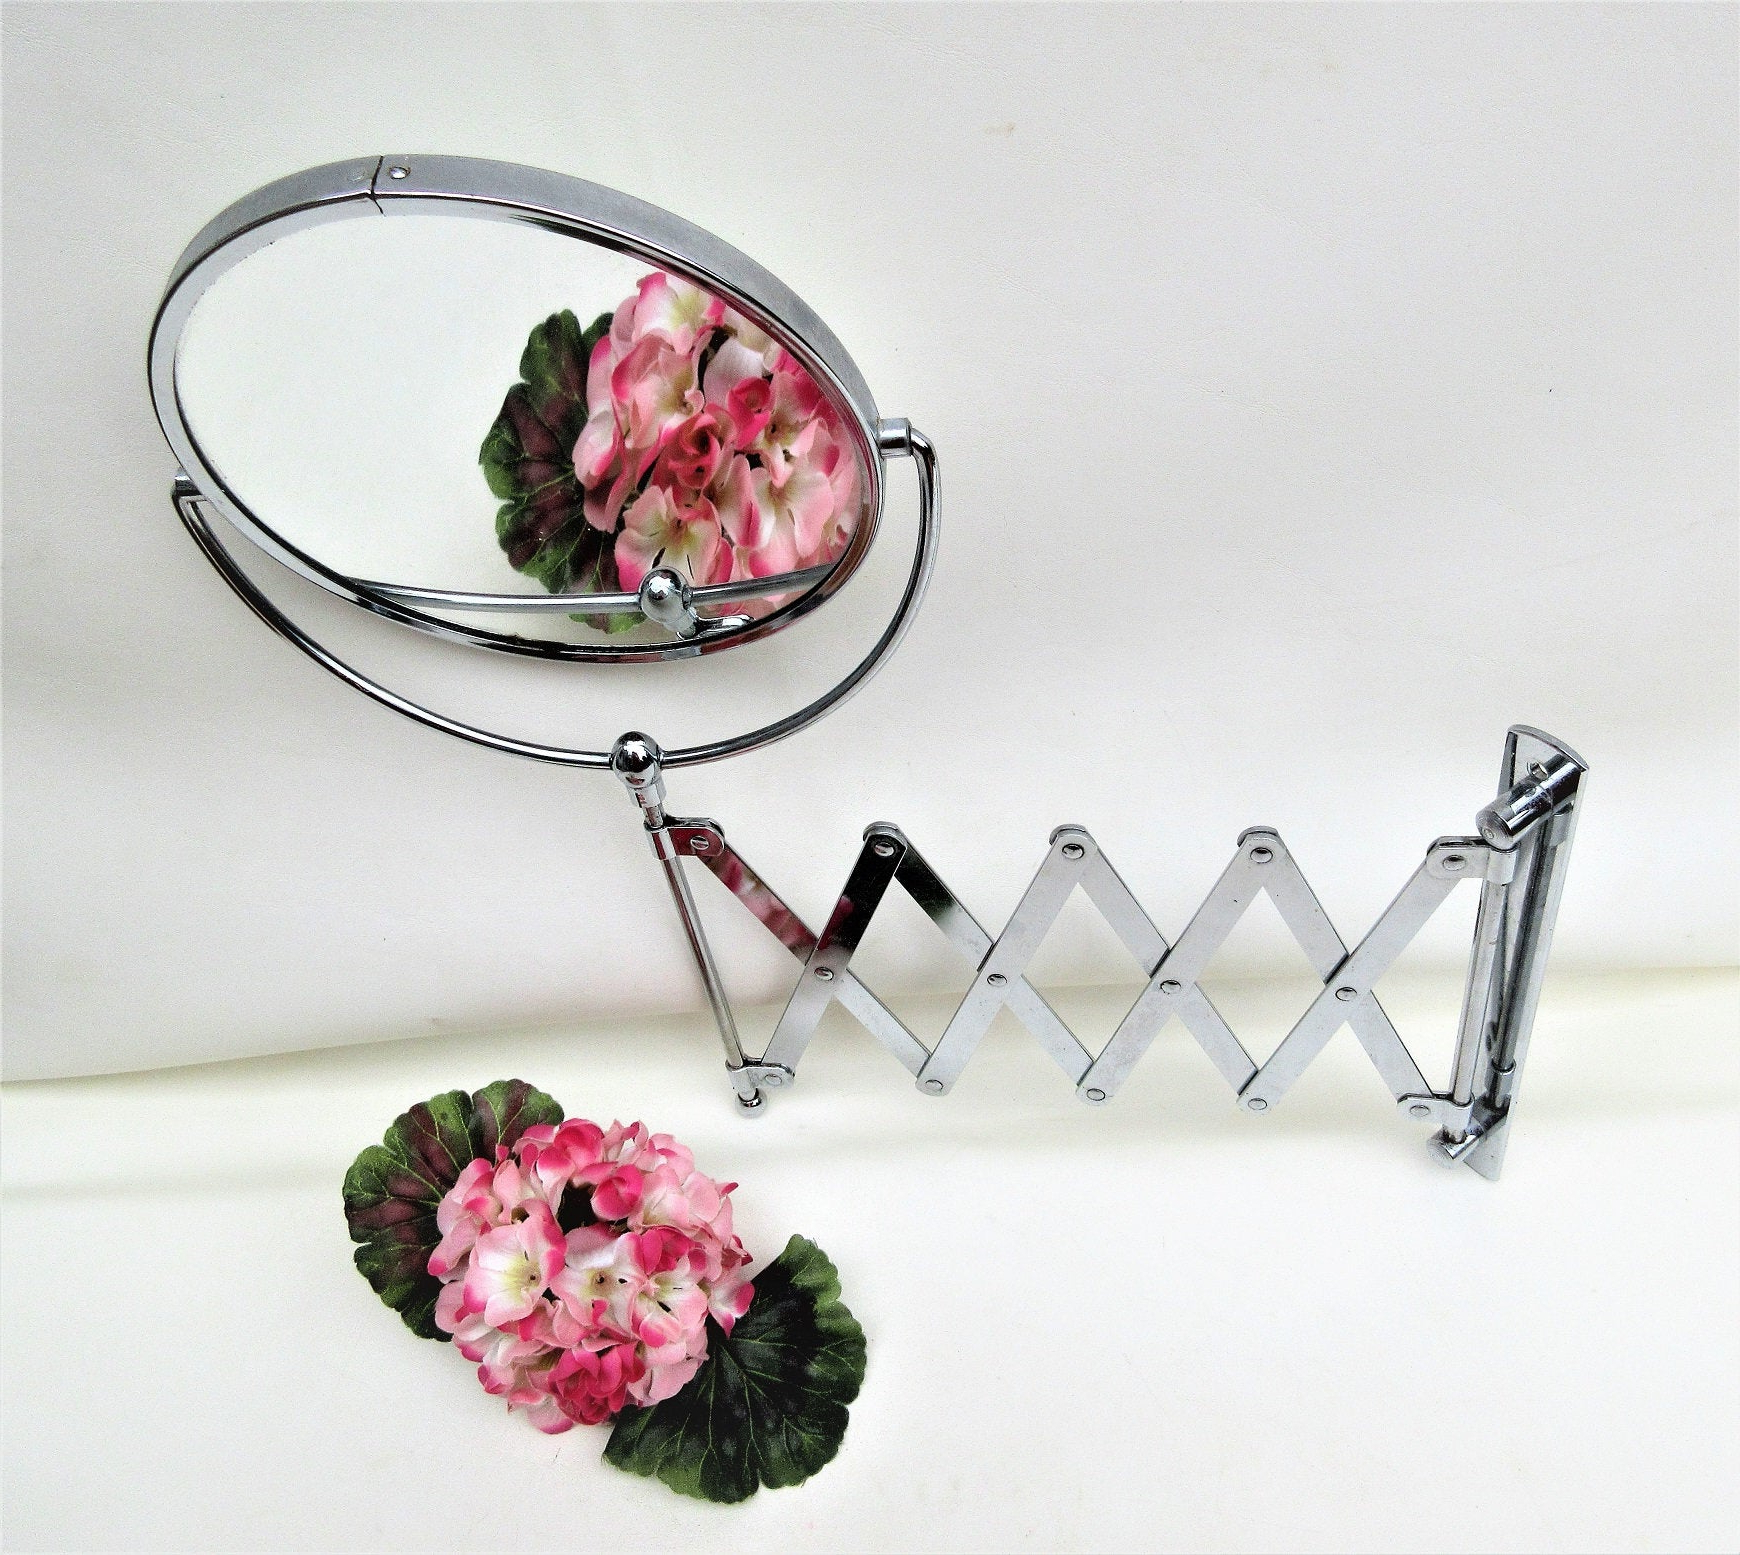 Tilting Mirror With Regard To Most Popular Accordion Wall Mirrors (Gallery 17 of 20)